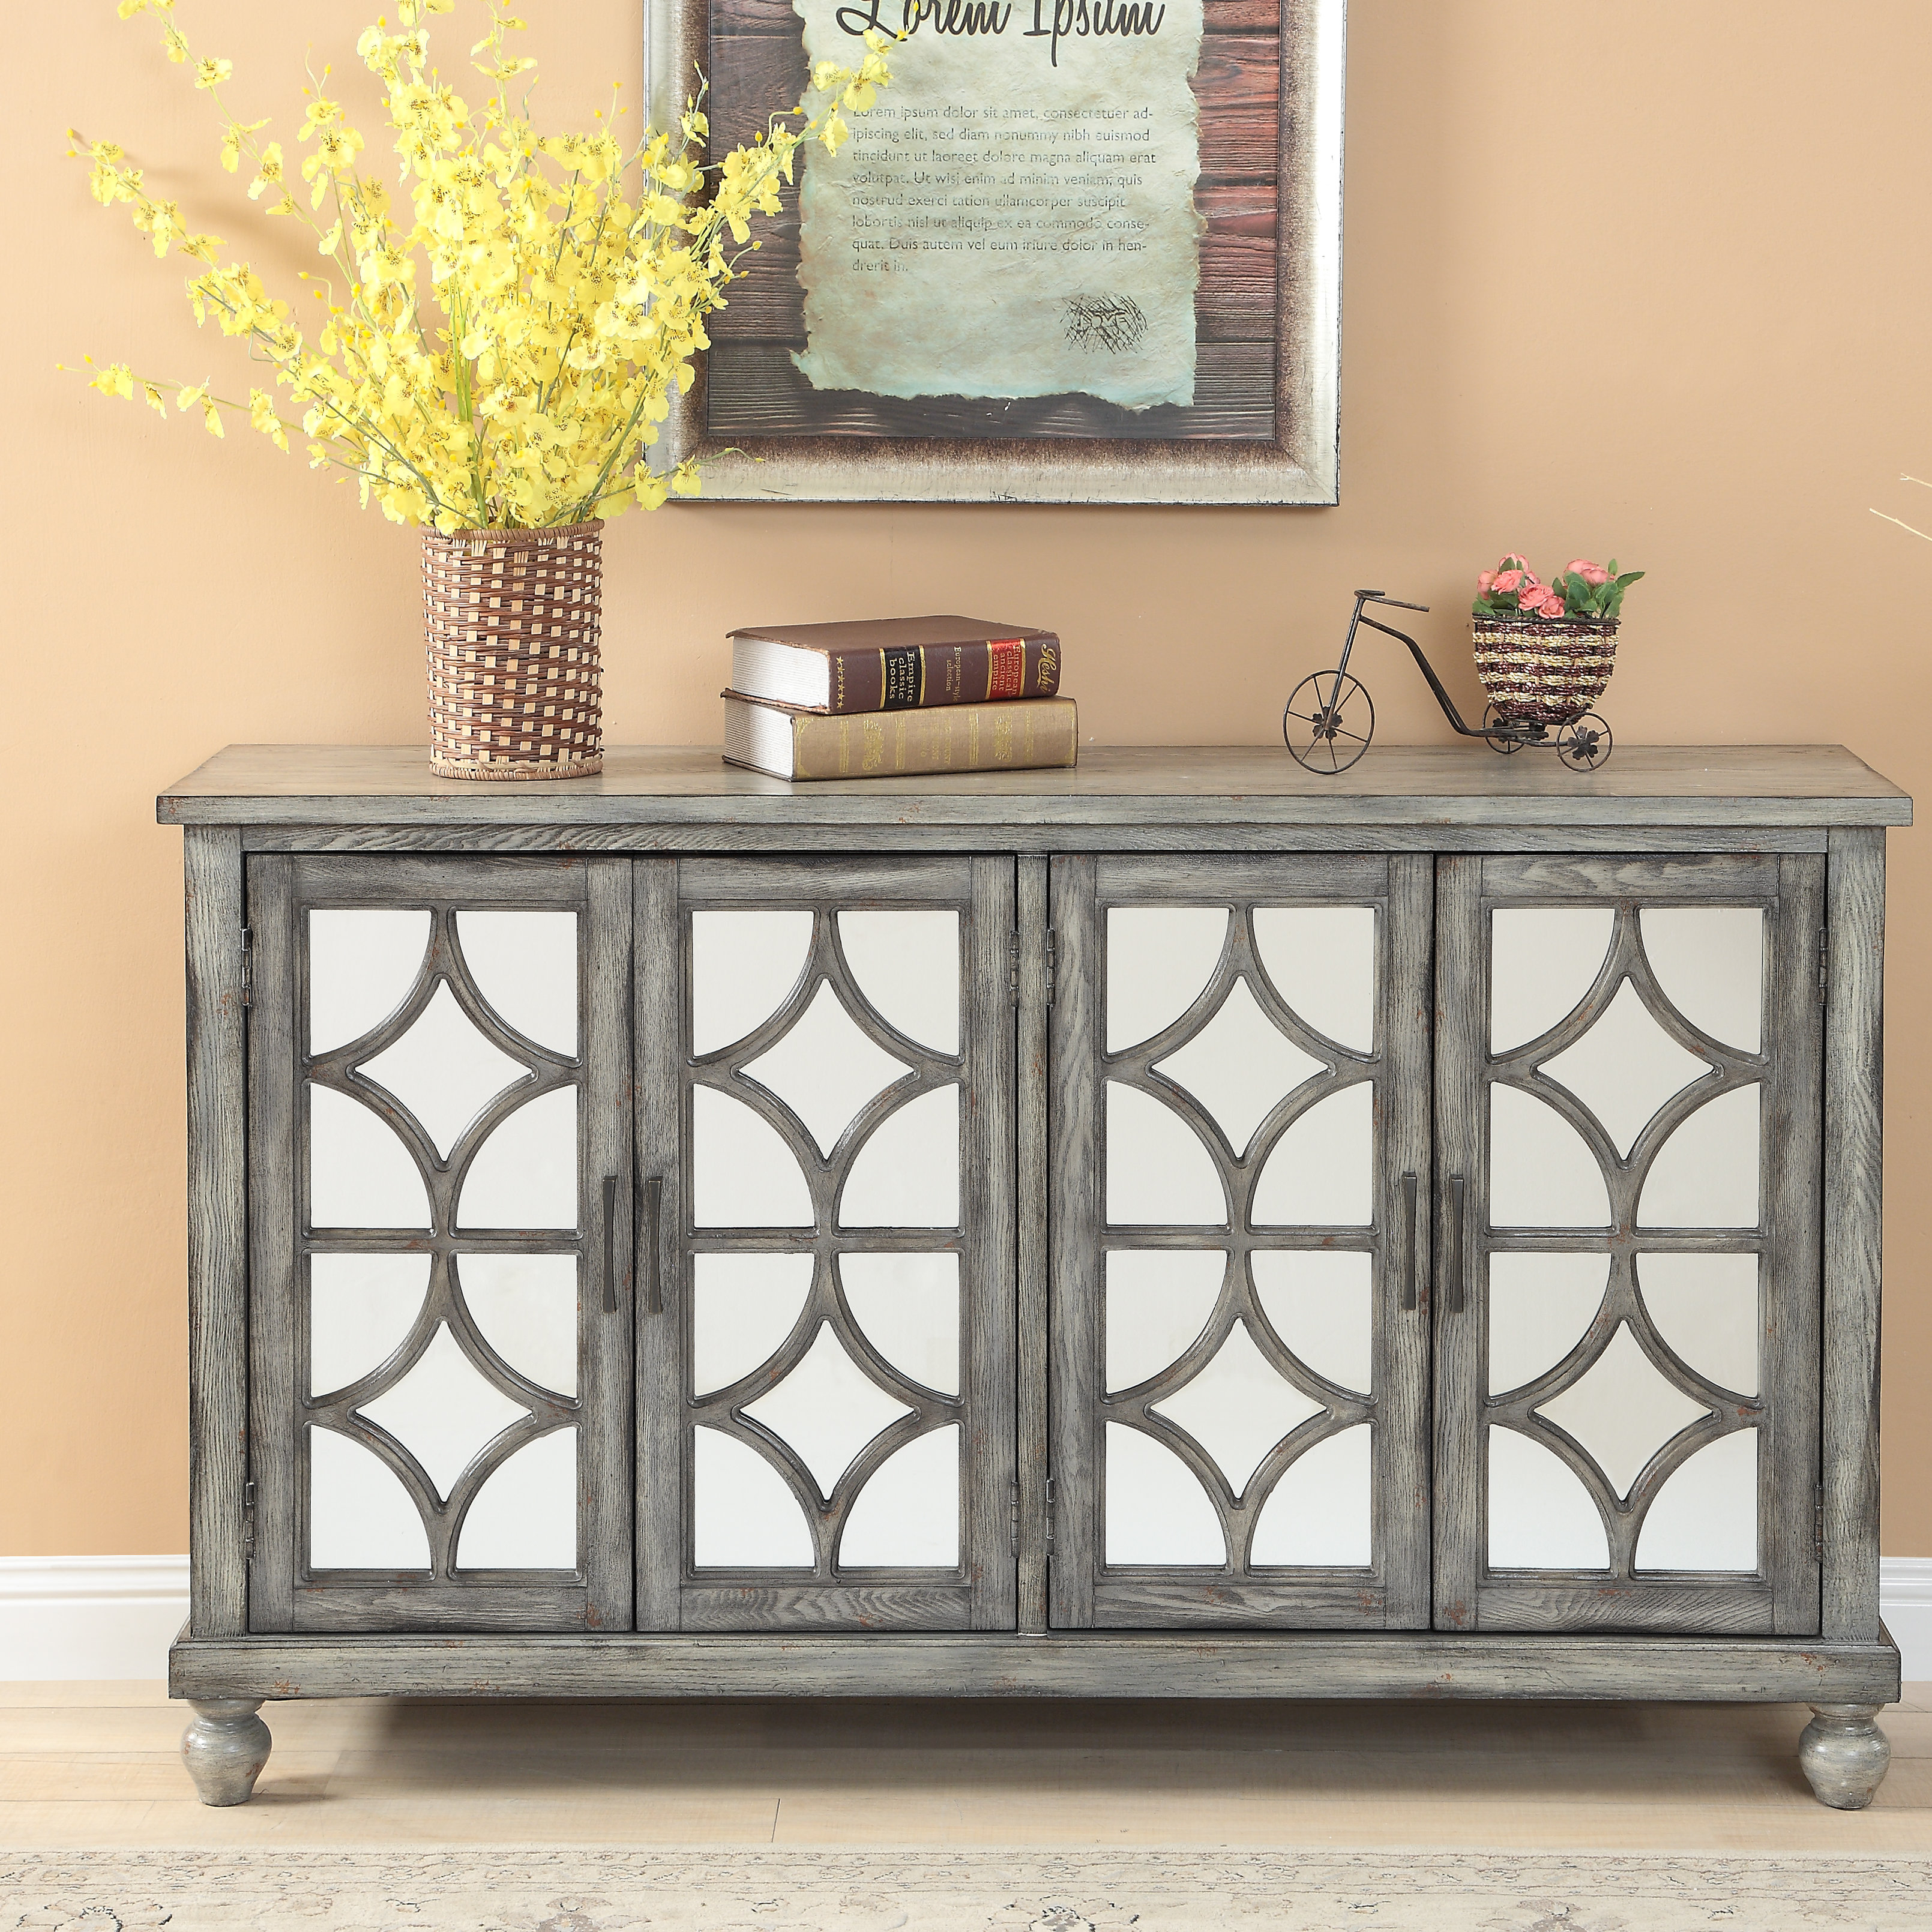 Extra Large Credenza | Wayfair In Recent Barr Credenzas (#7 of 20)